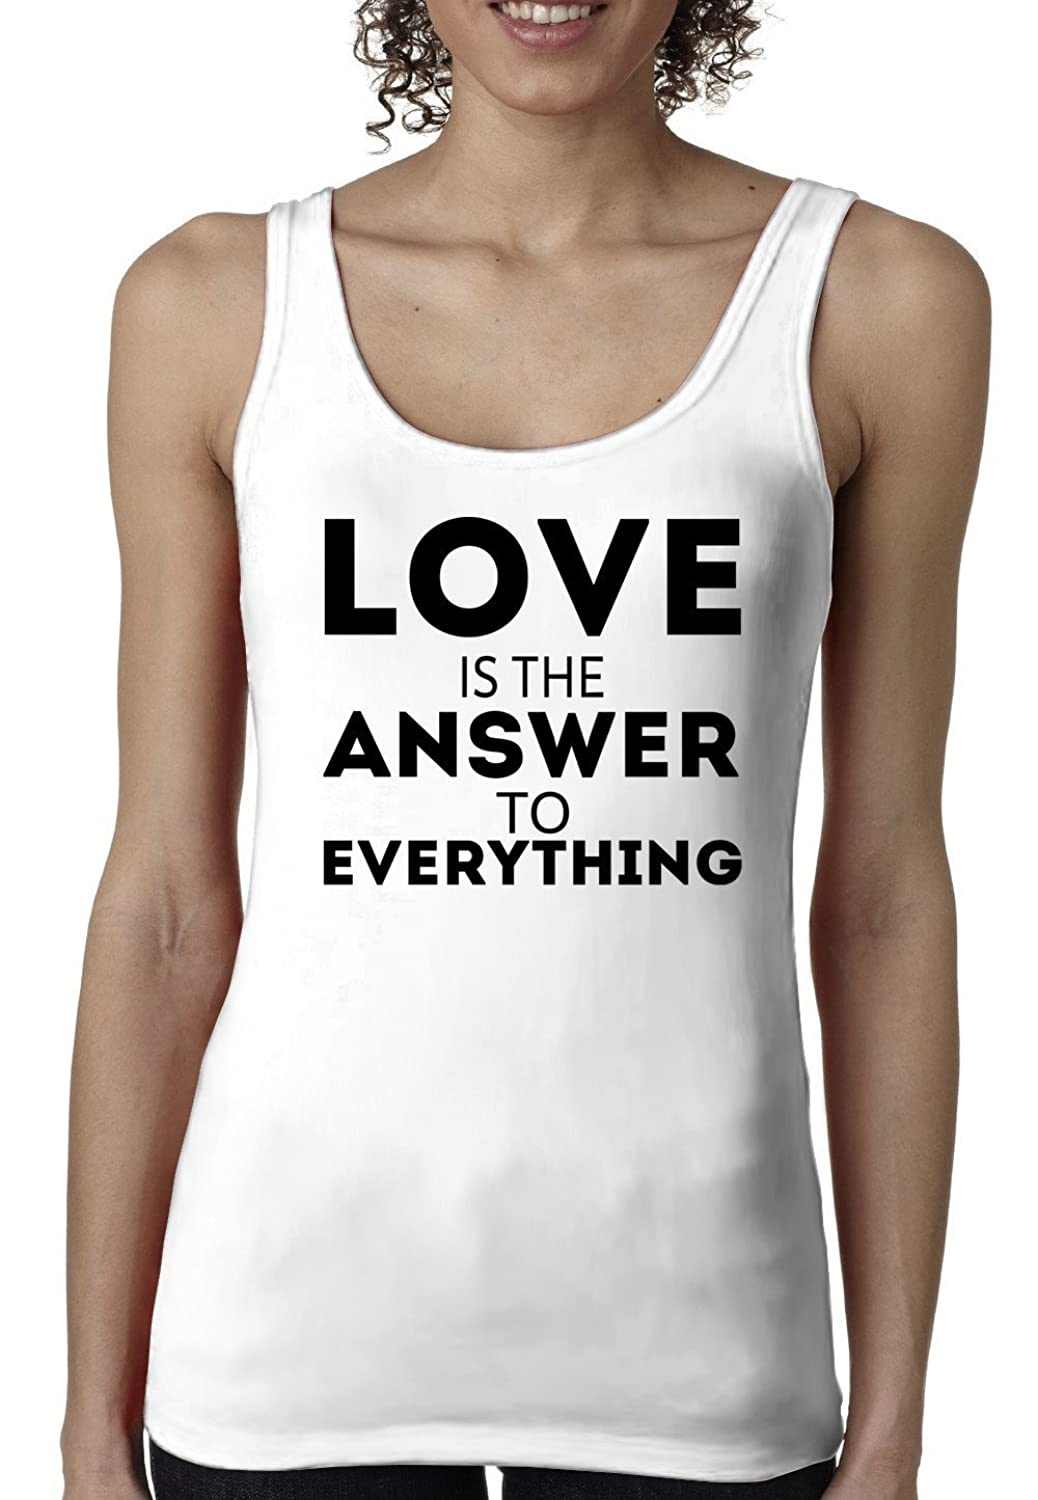 Prince EA Women's Love is the Answer to Everything Tank-top